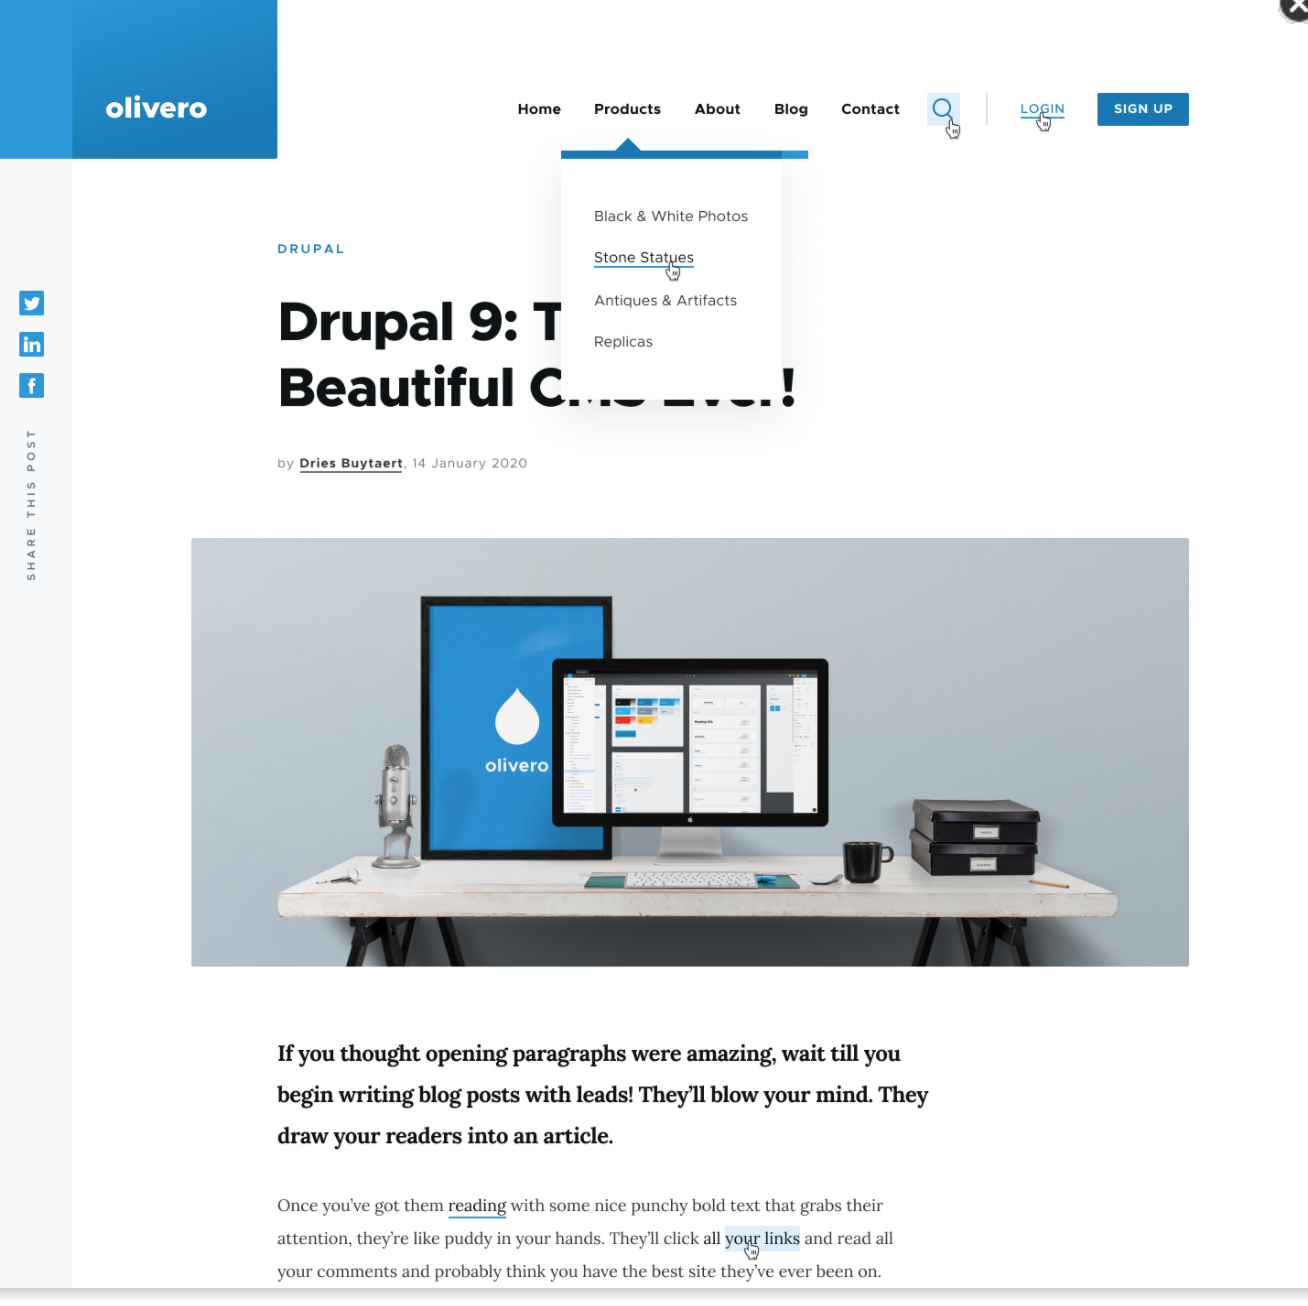 New modern Drupal interface with responsive design